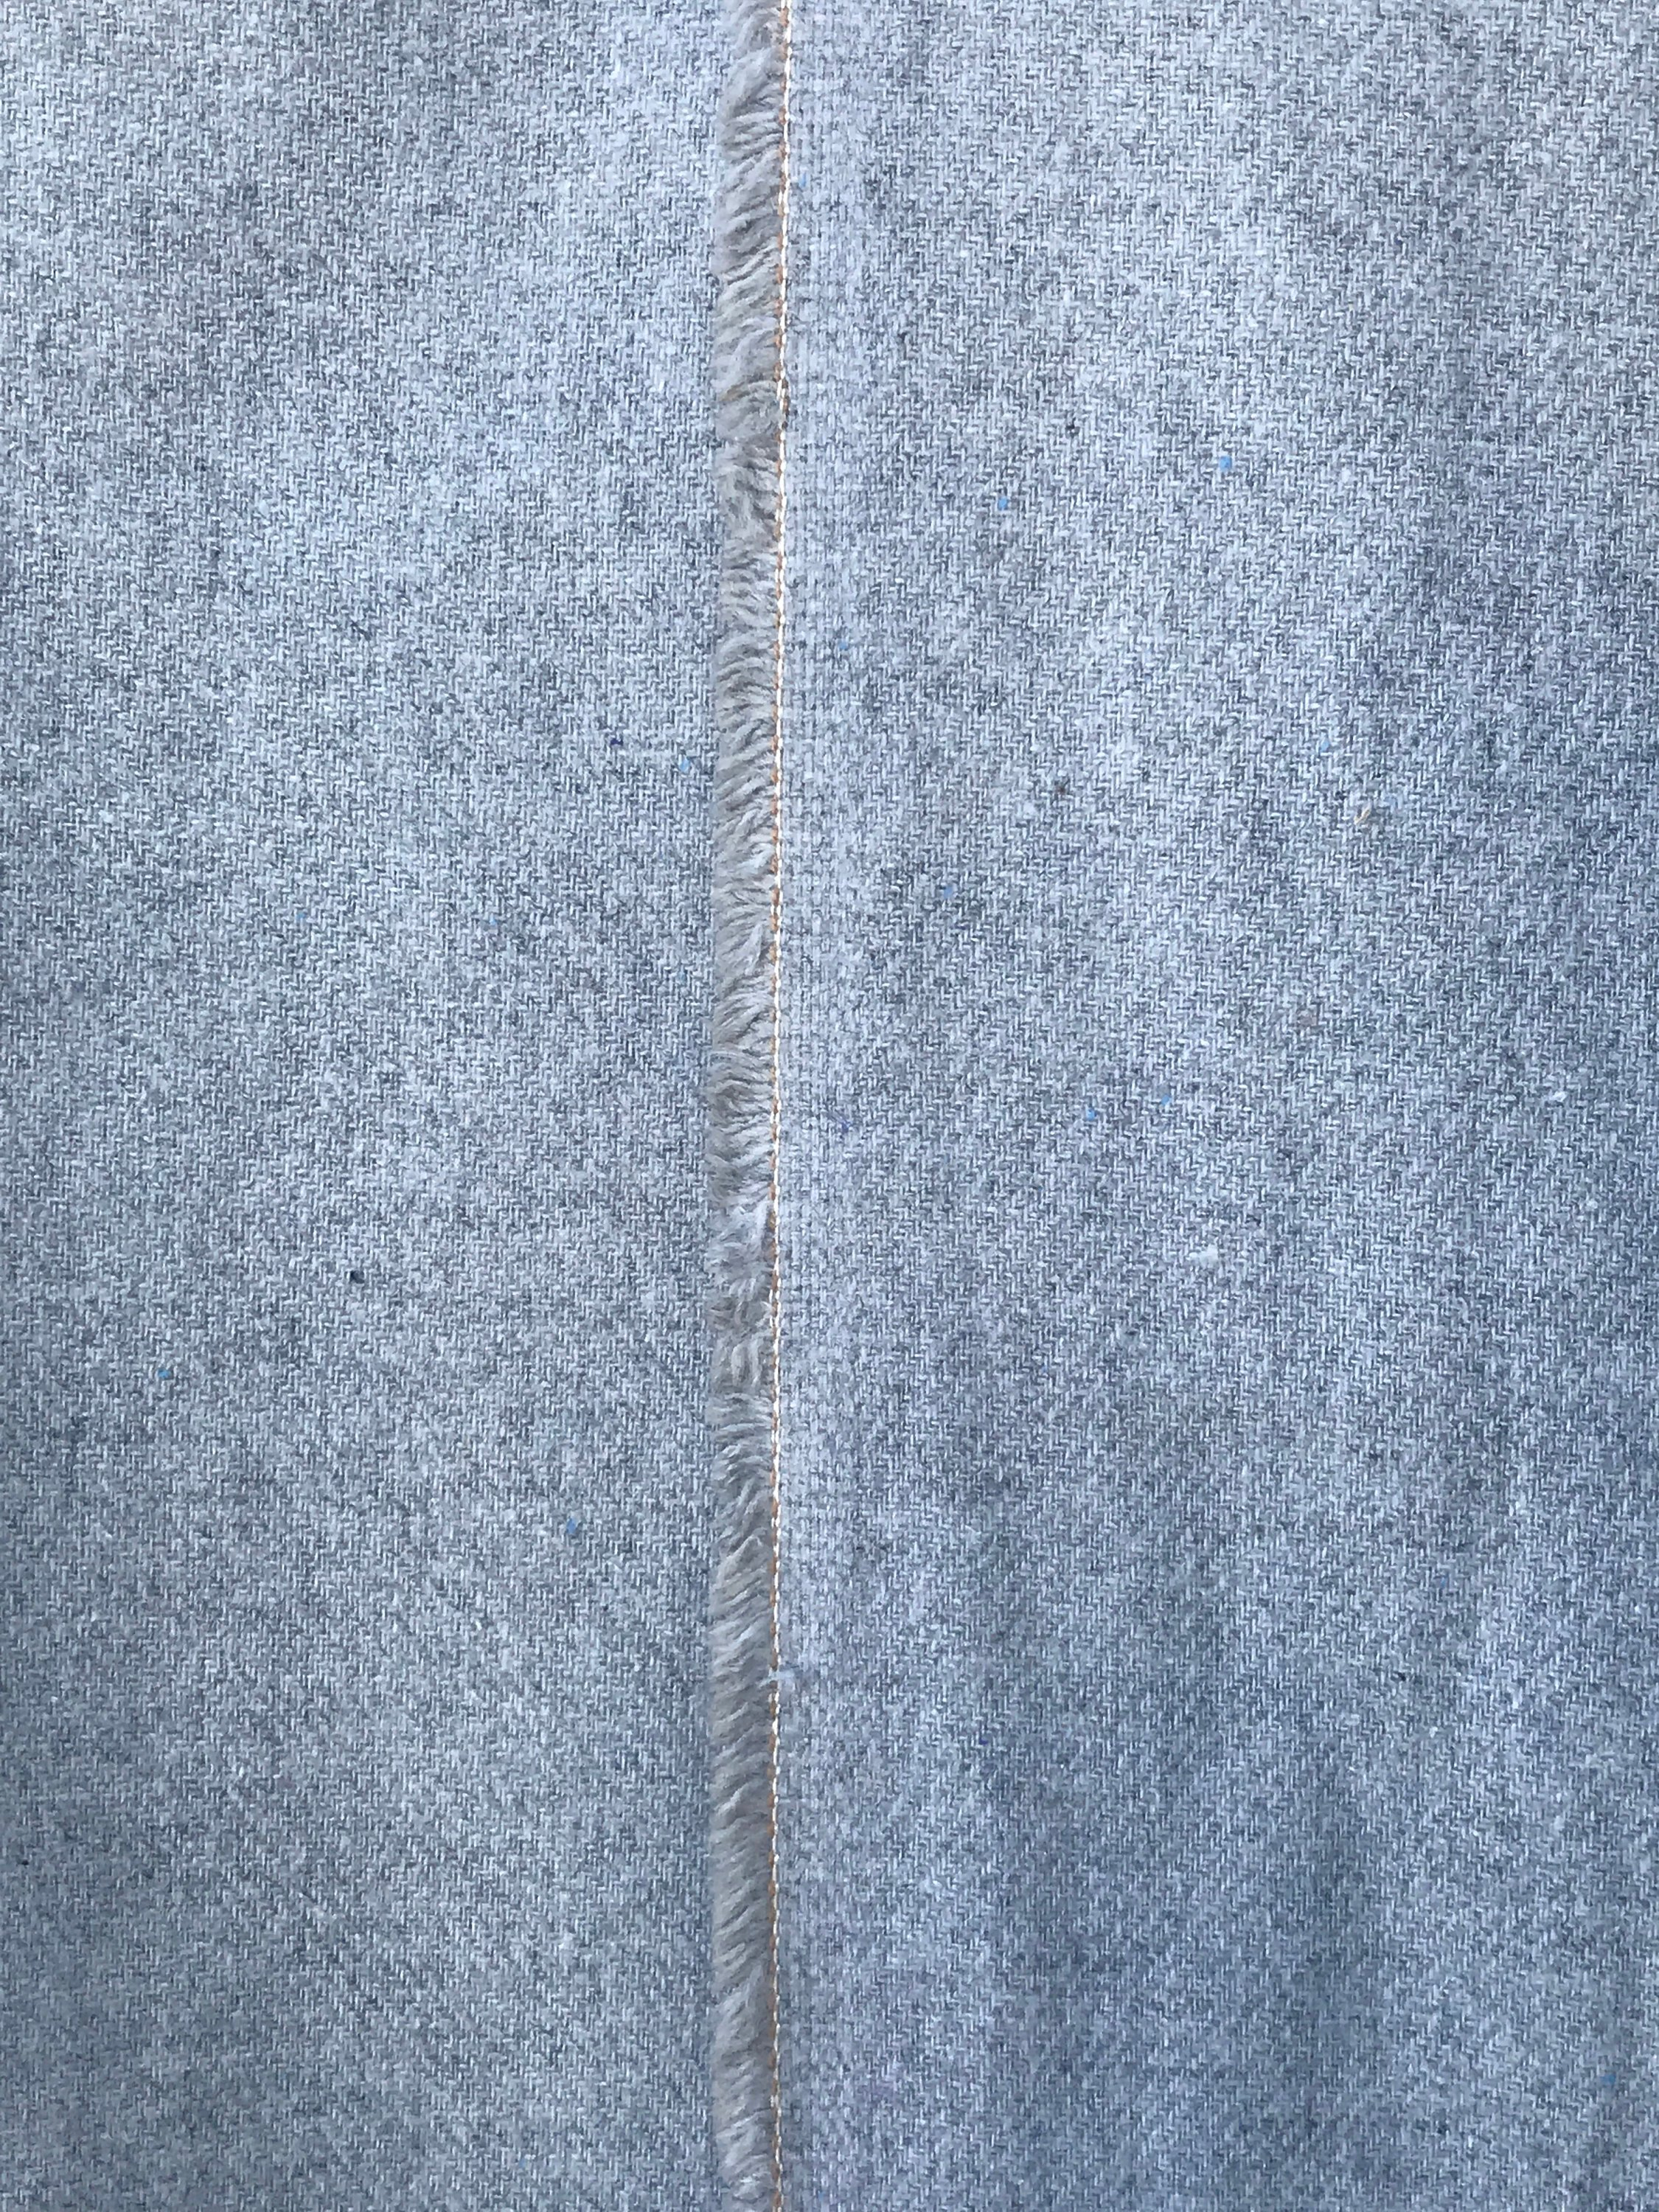 light grey acrylic flannel, felt 150cm 60 inches wide suiting, pants skirt fabric, olive blue on brown